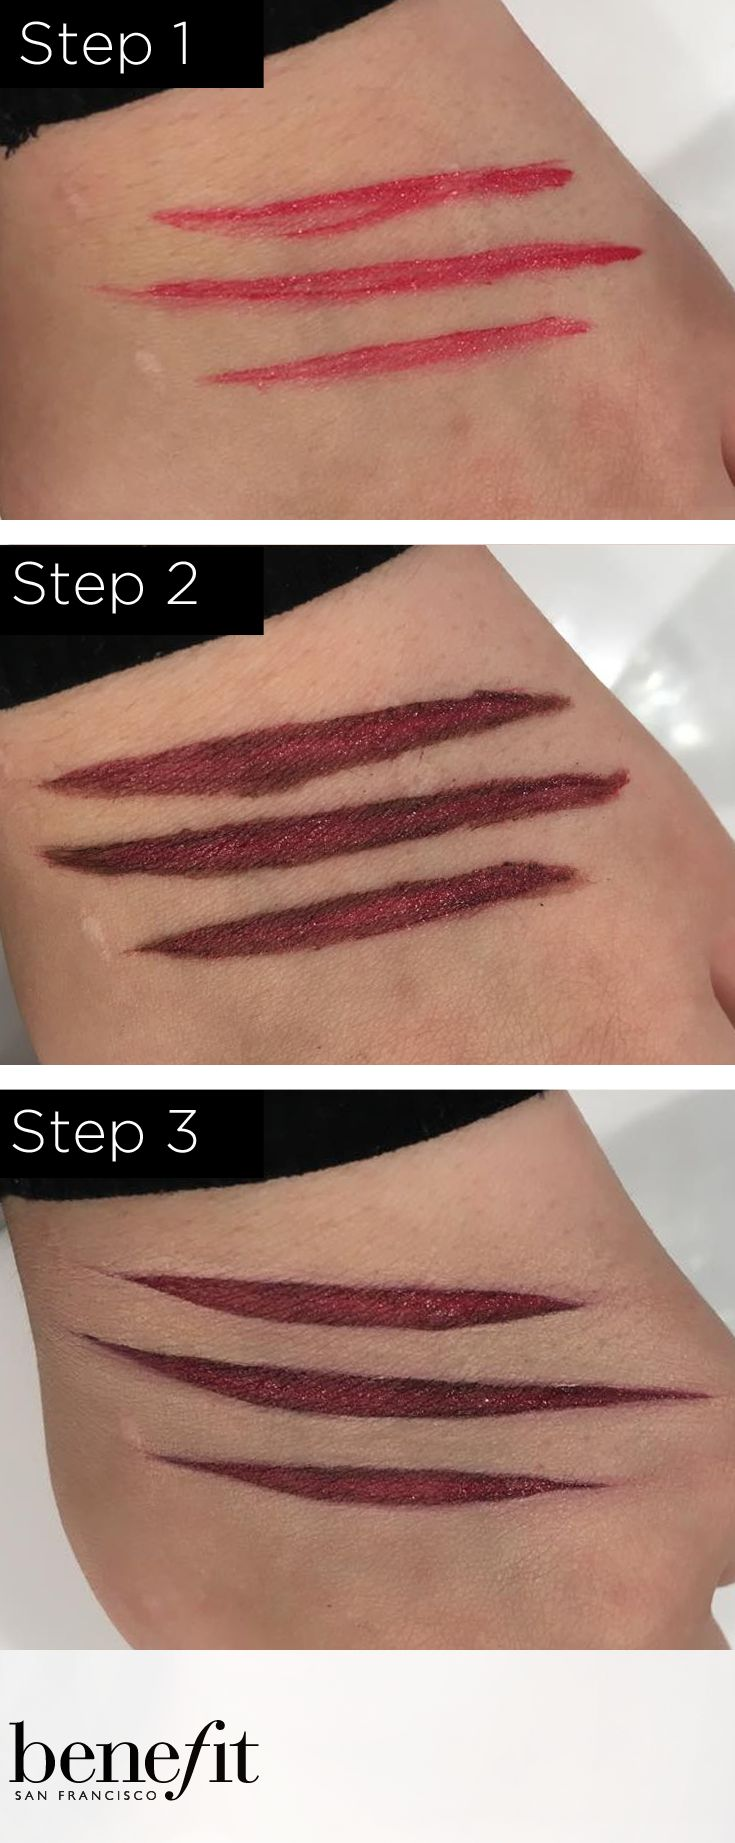 "Want to create the perfect werewolf scratches? Check out this look from the Marina Ijichi from the Bury Benefit counter ""Werewolf scratch"" - Apply a thick coat of dare me lipstick onto the area with an angled brush. Then using the same type brush line it, just inside the shape, with the quick look busy shadow and blend it inwards. This helps give it a more raw flesh colour and gives it more depth. Finally use a concealer brush and boing concealer and sharpen and tidy up around the shape. xx"